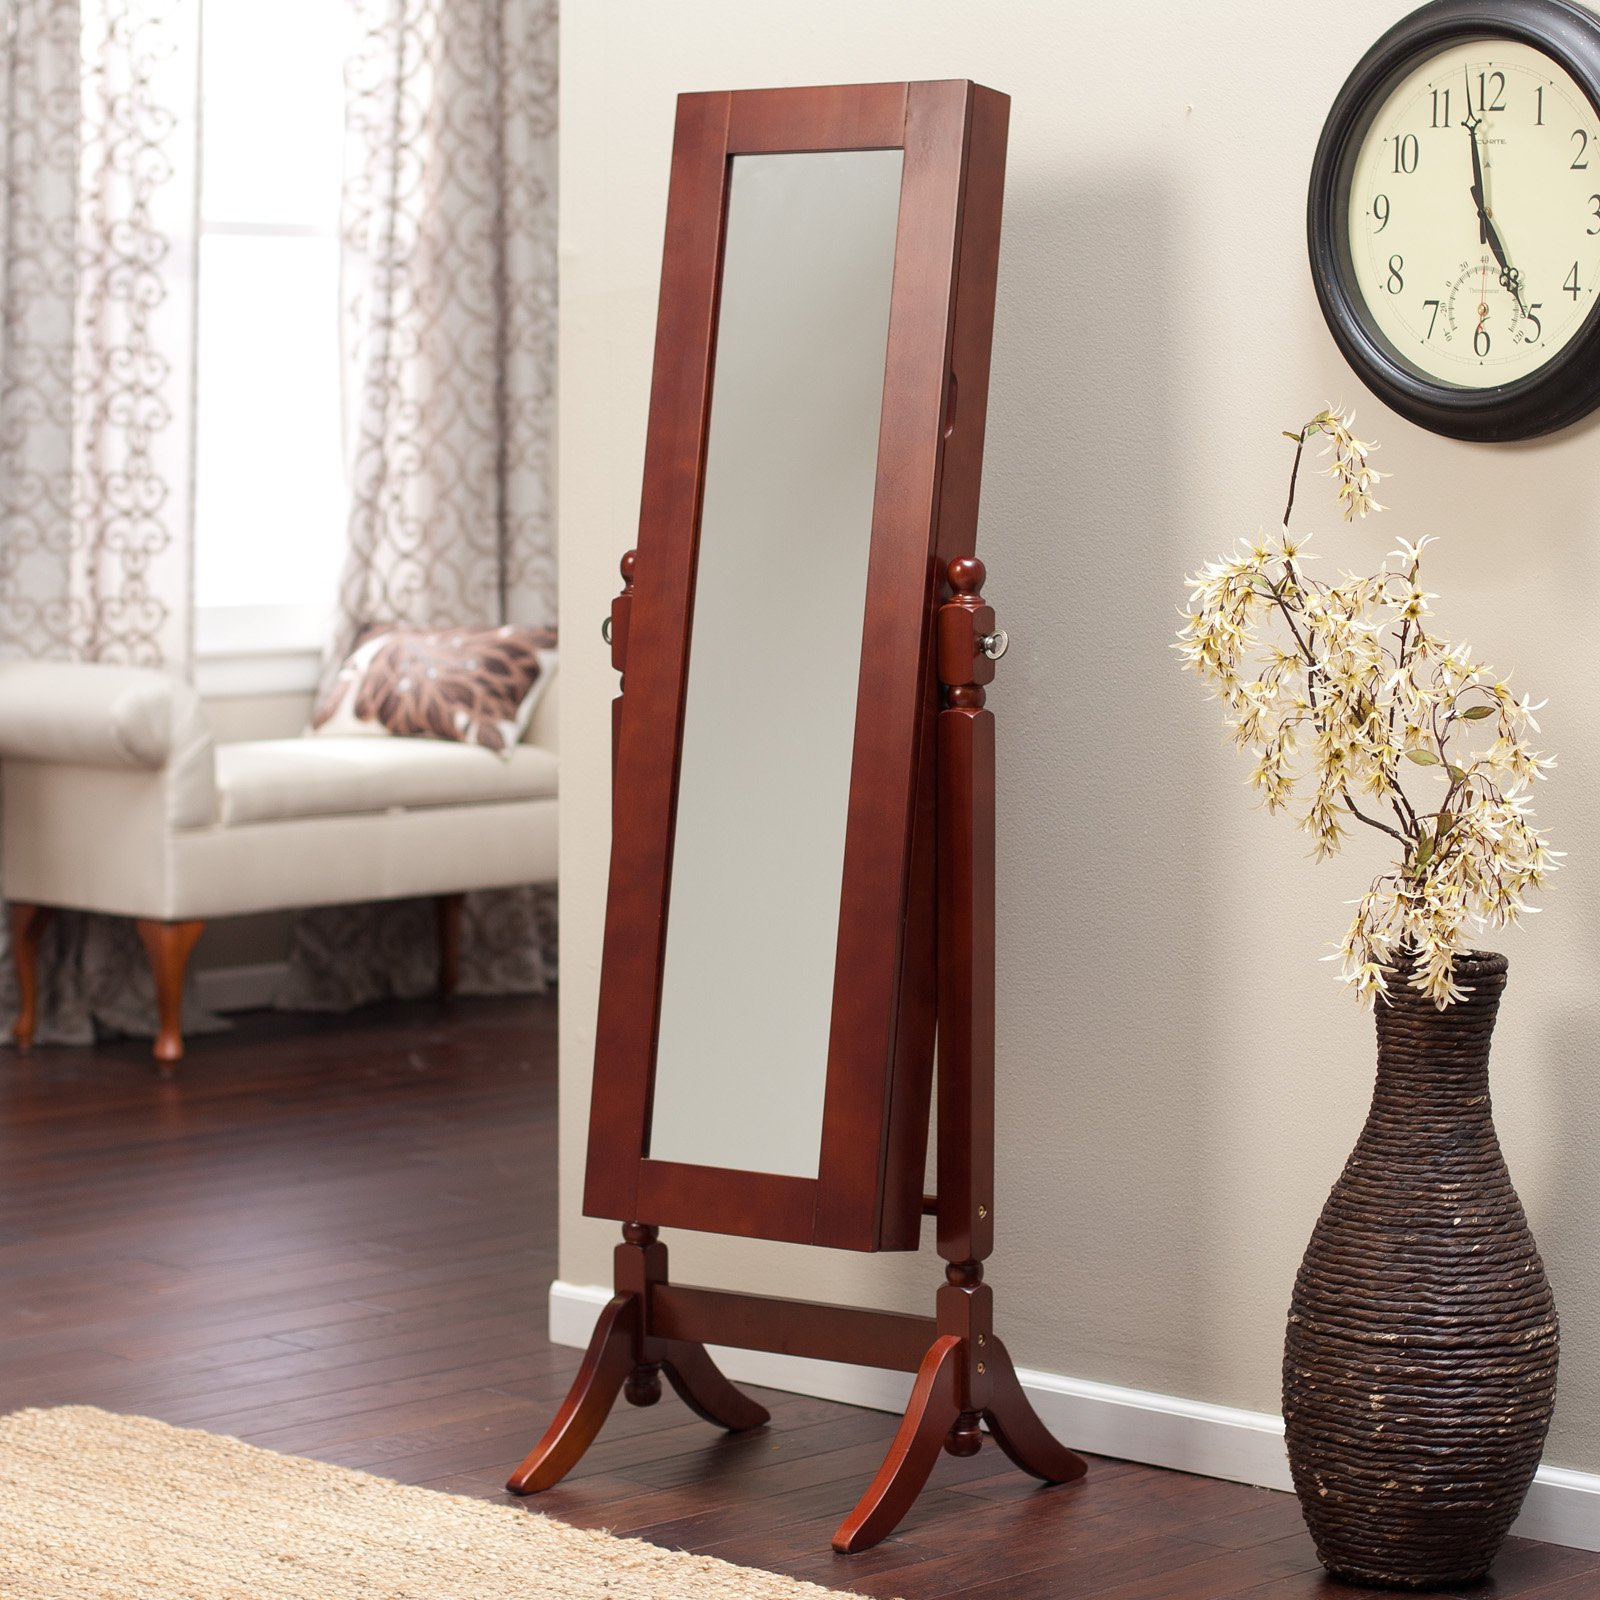 Heritage Jewelry Armoire Cheval Mirror   Cherry   Walmart.com